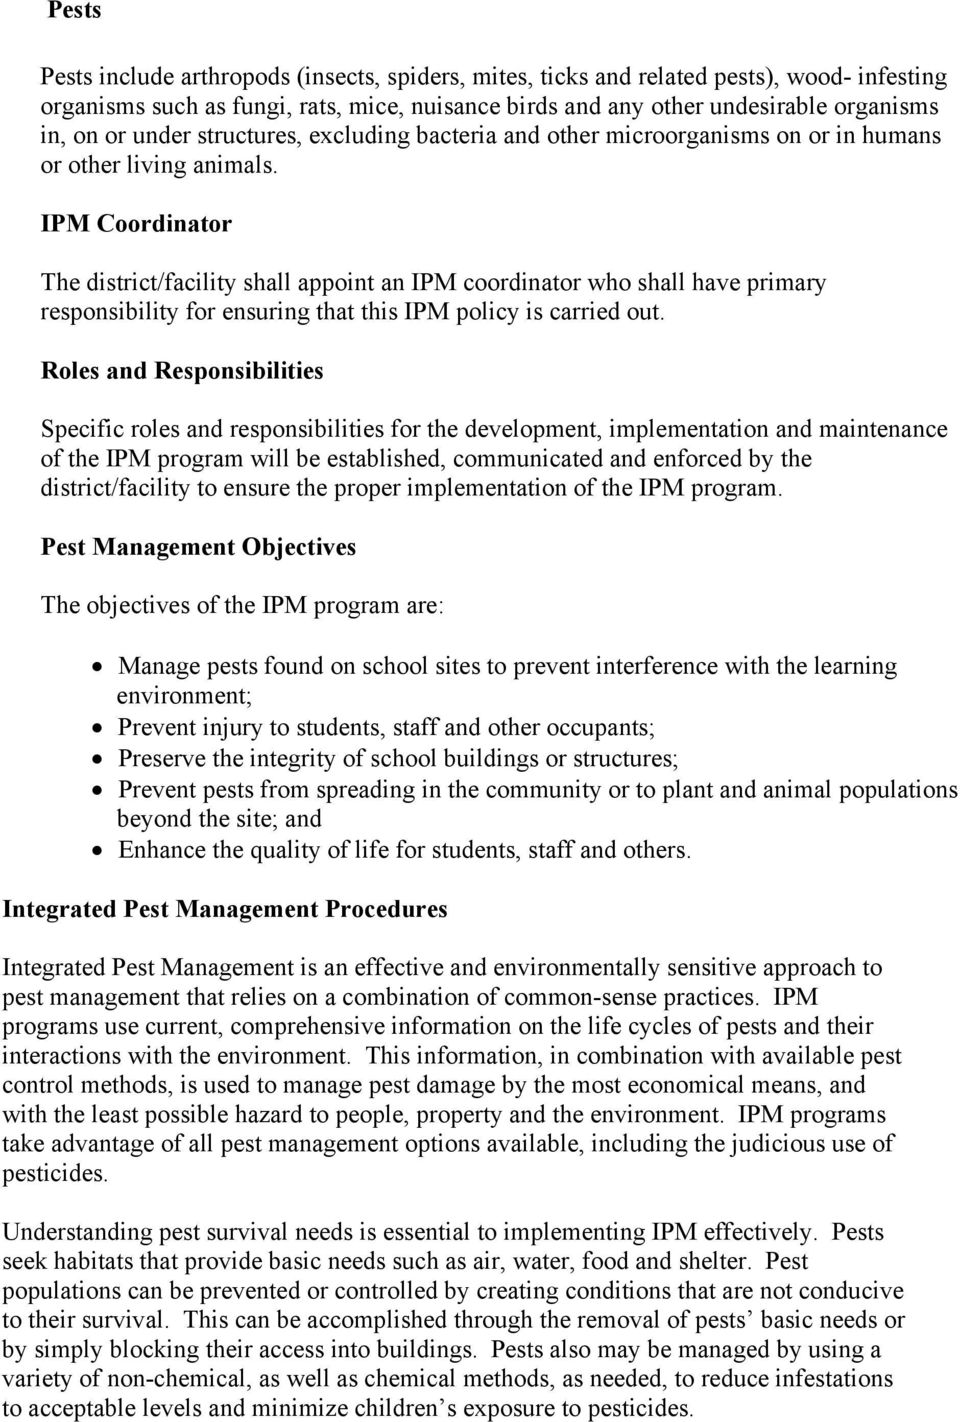 IPM Coordinator The district/facility shall appoint an IPM coordinator who shall have primary responsibility for ensuring that this IPM policy is carried out.